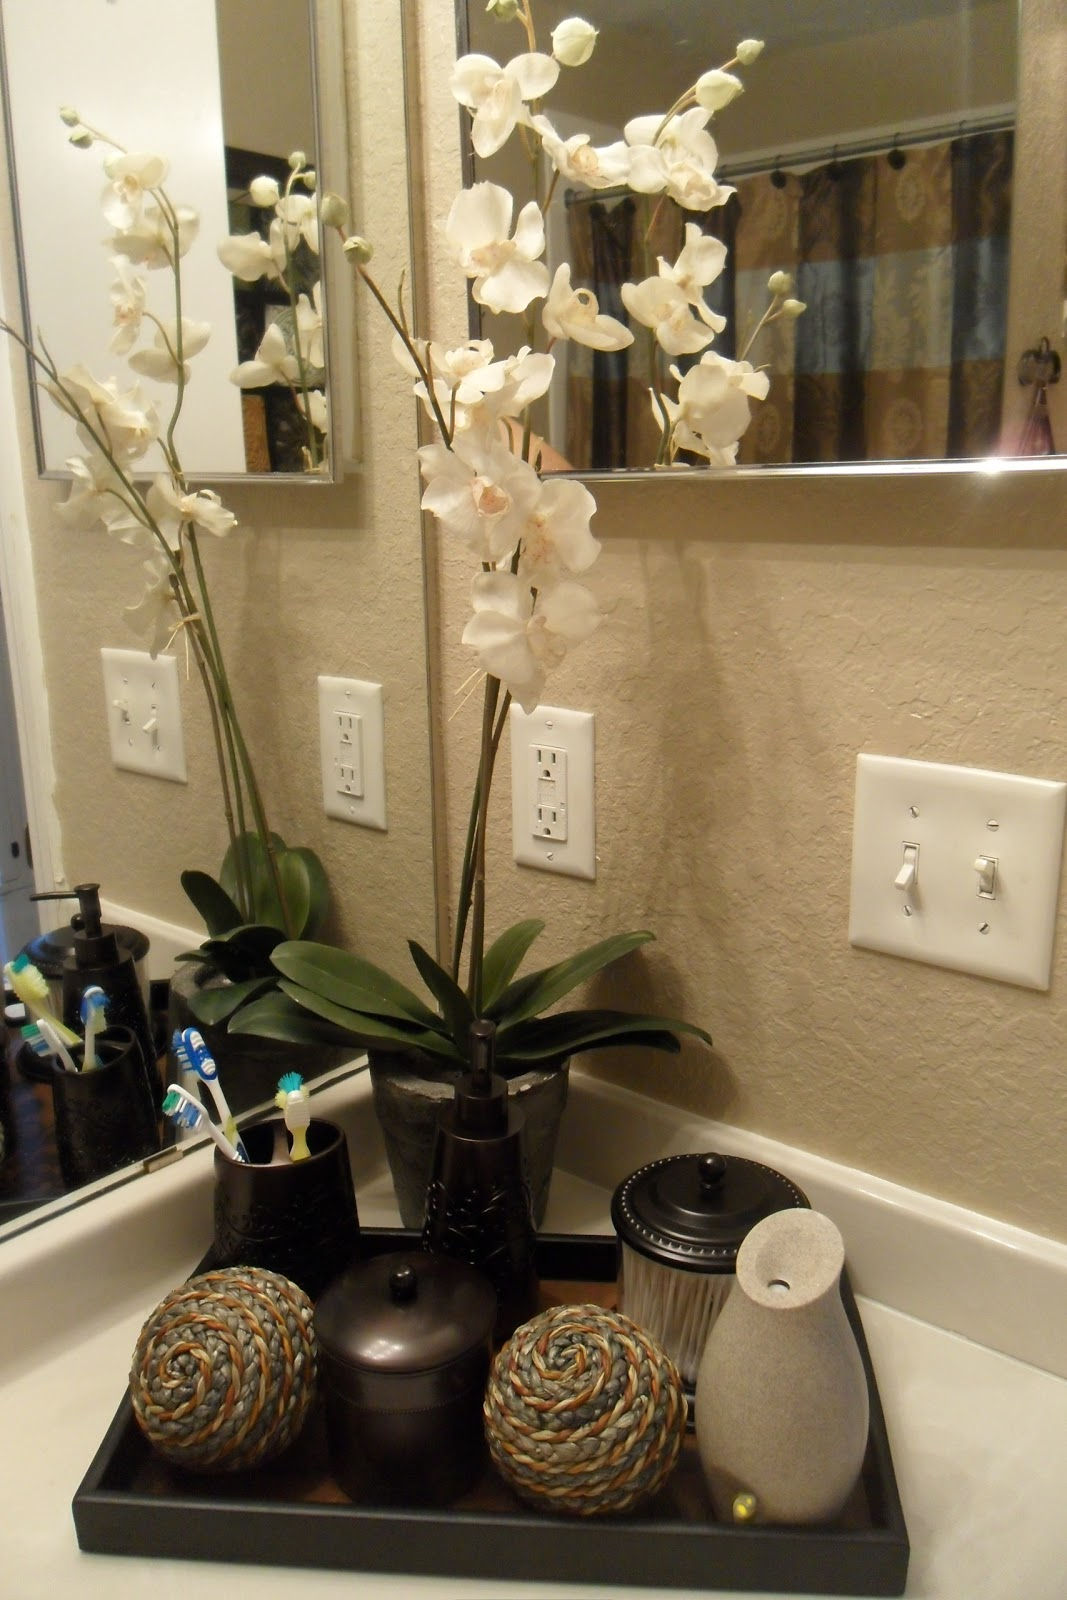 Http Onepinkchic N Herdecor Blogspot Com 2012 03 Went Shopping And Redone My Bathroom Html